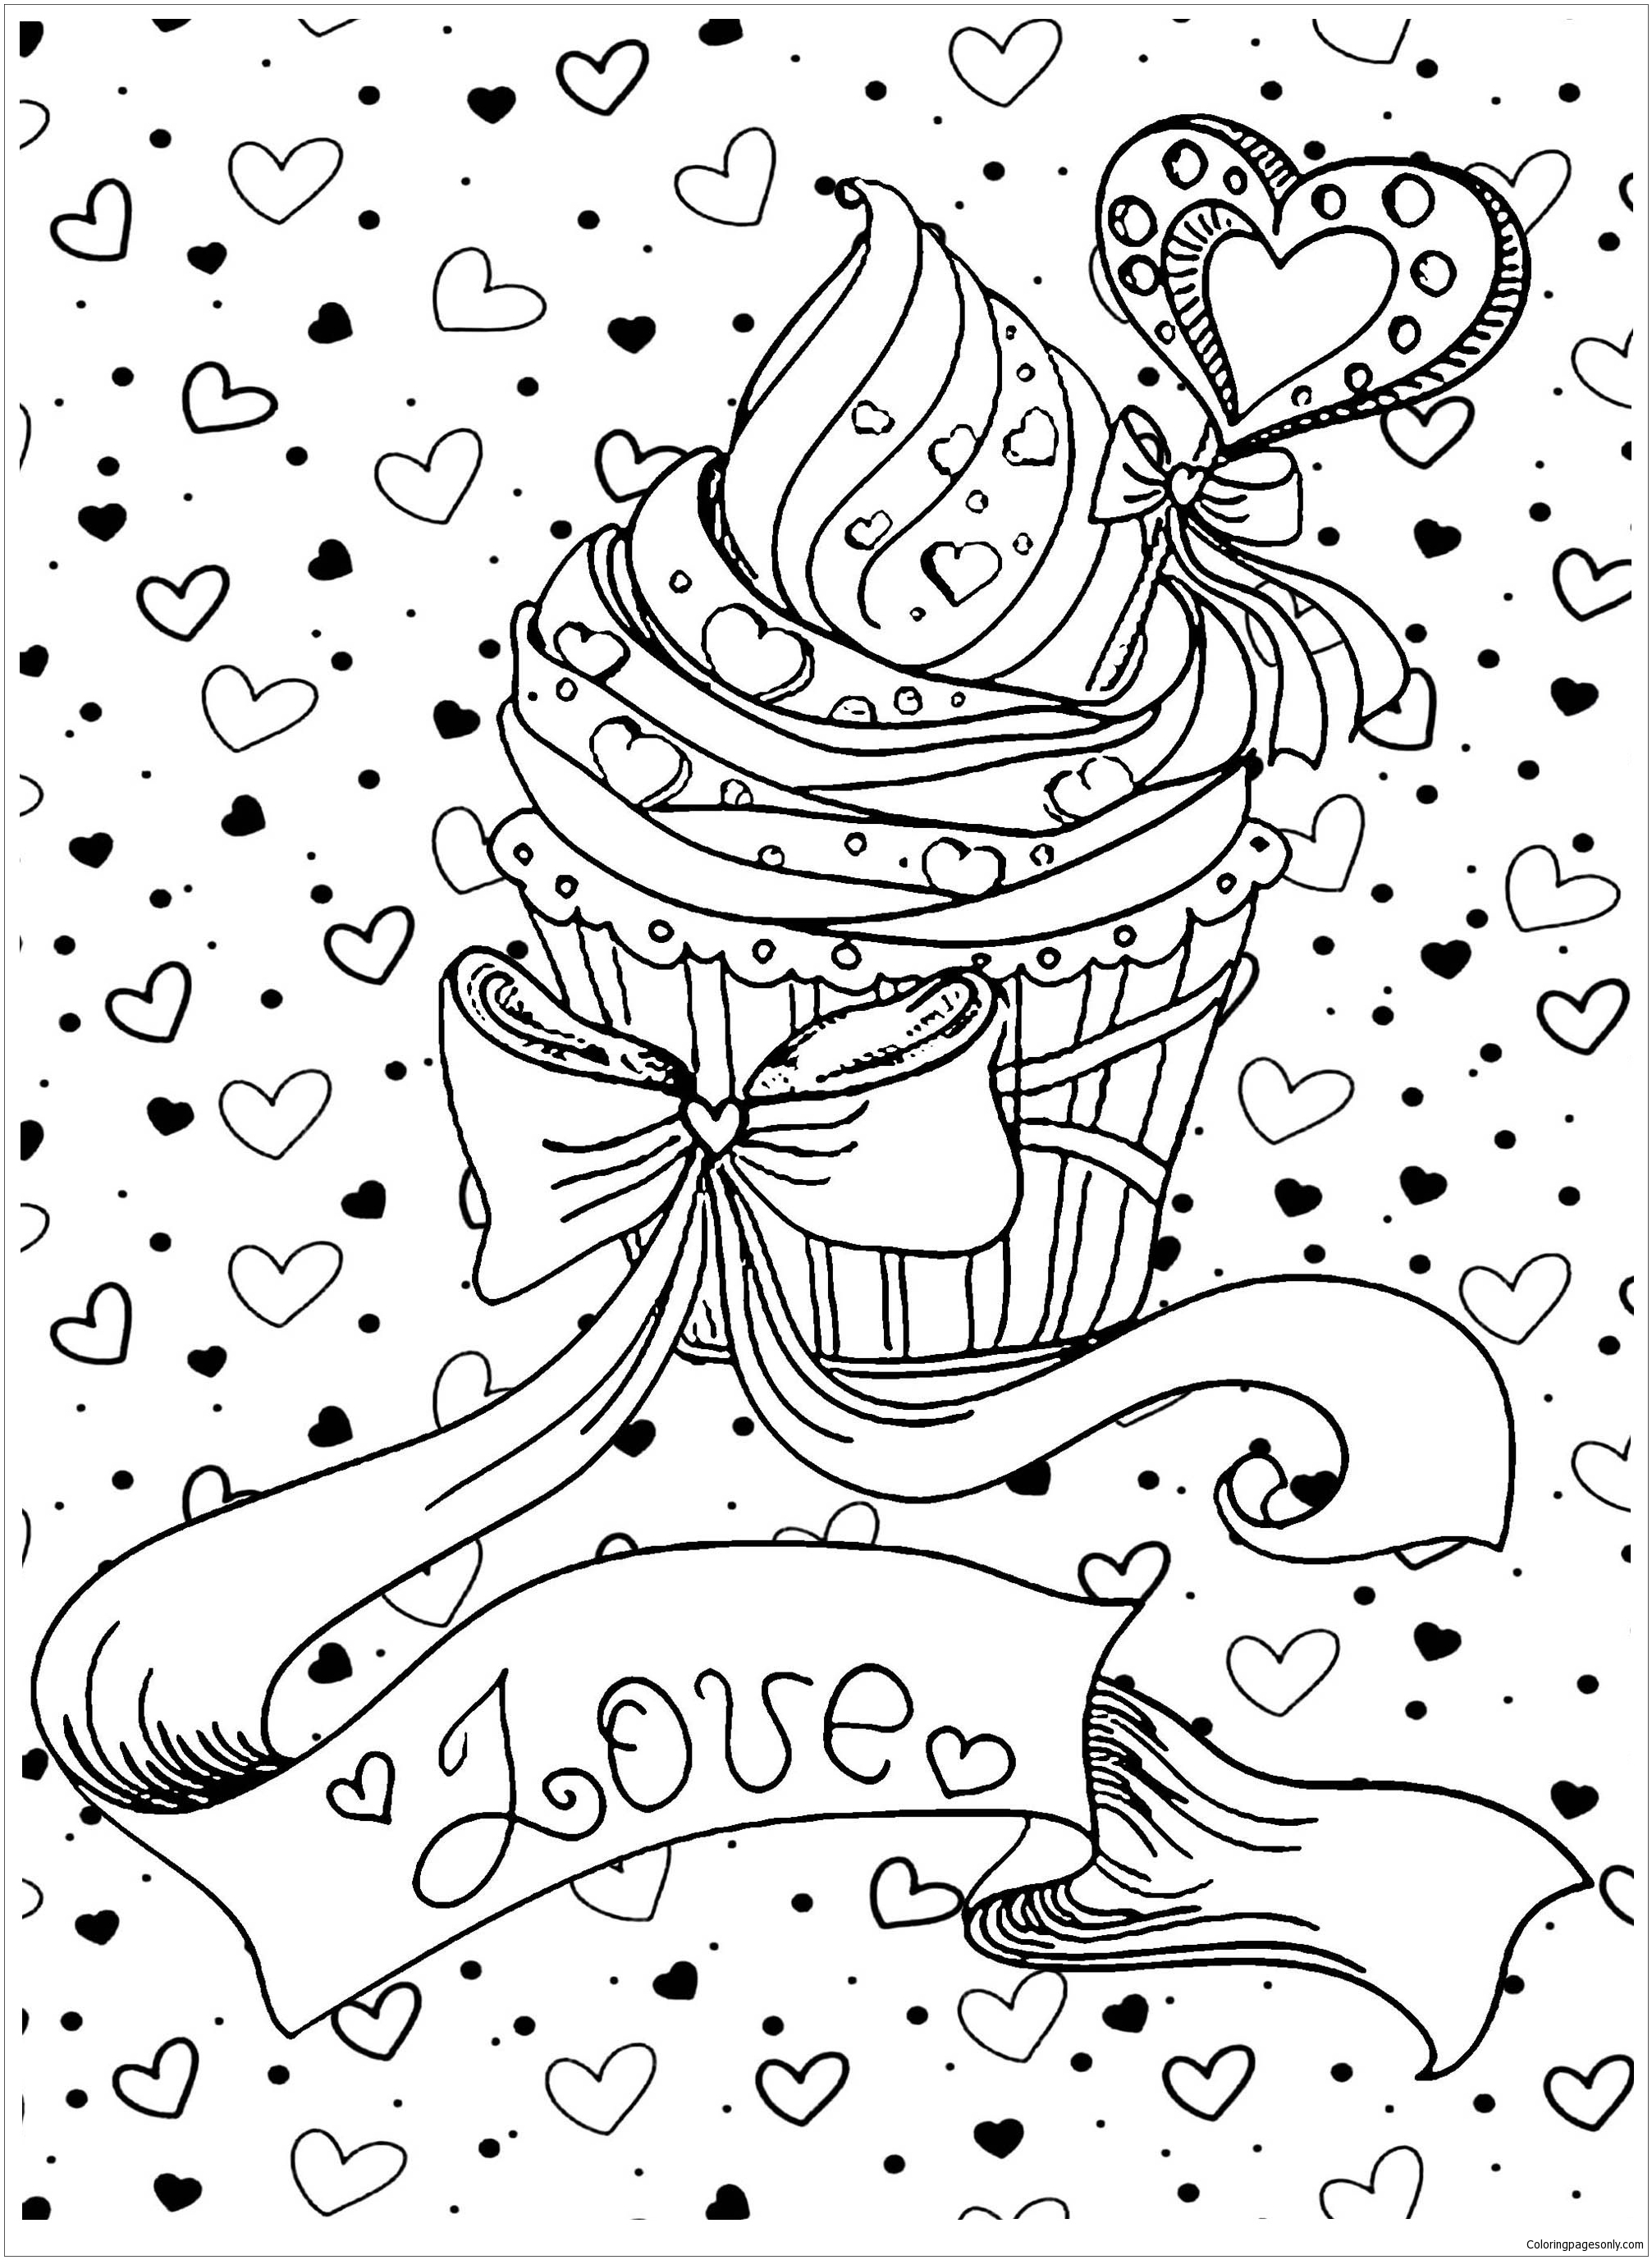 2 HEARTS 2 LIVES 1 LOVE - Free Printable Coloring Page — Stevie Doodles | 2754x2013